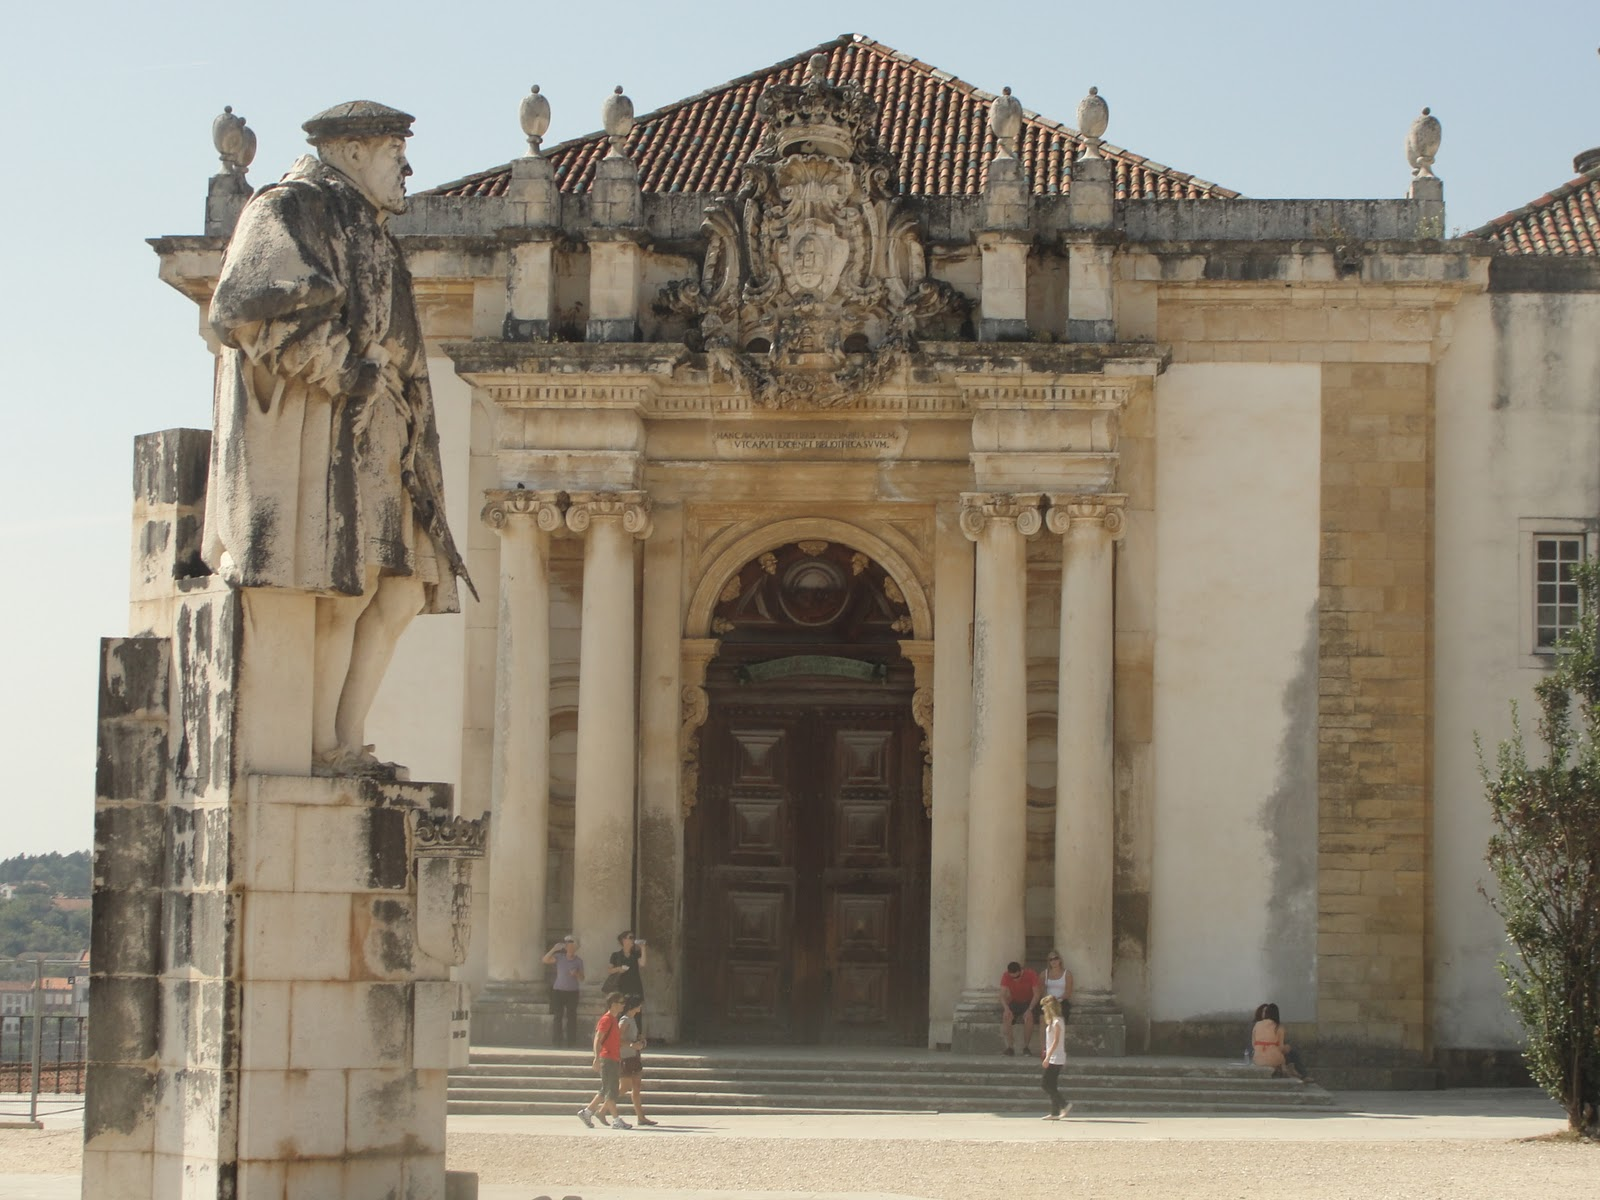 Most Beautiful Universities, Coimbra, Portugal, The Biblioteca of Coimbra University